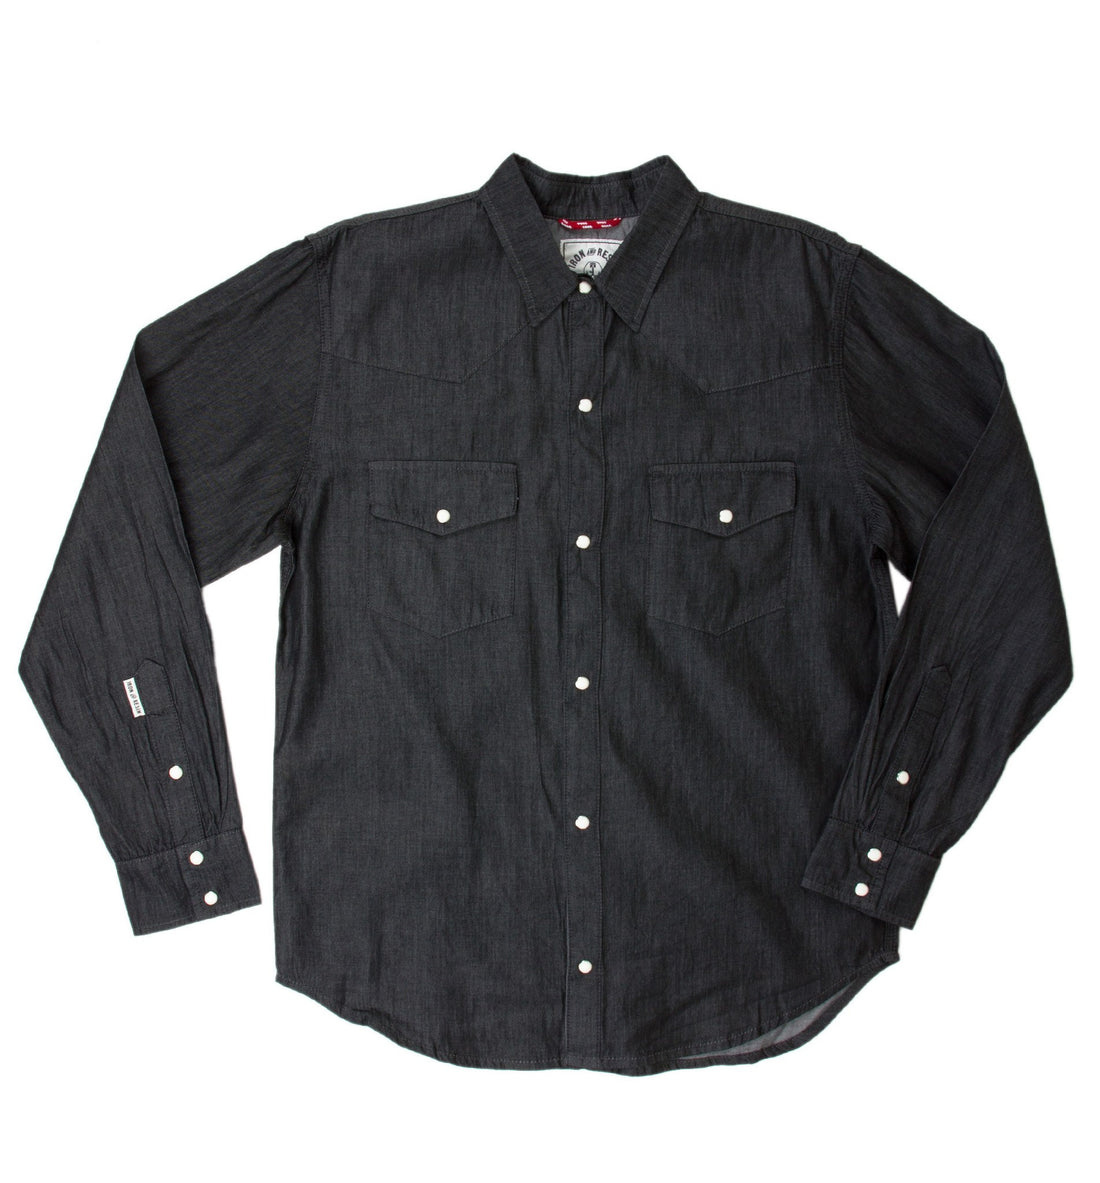 INR Guthrie Shirt - Tops - Iron and Resin